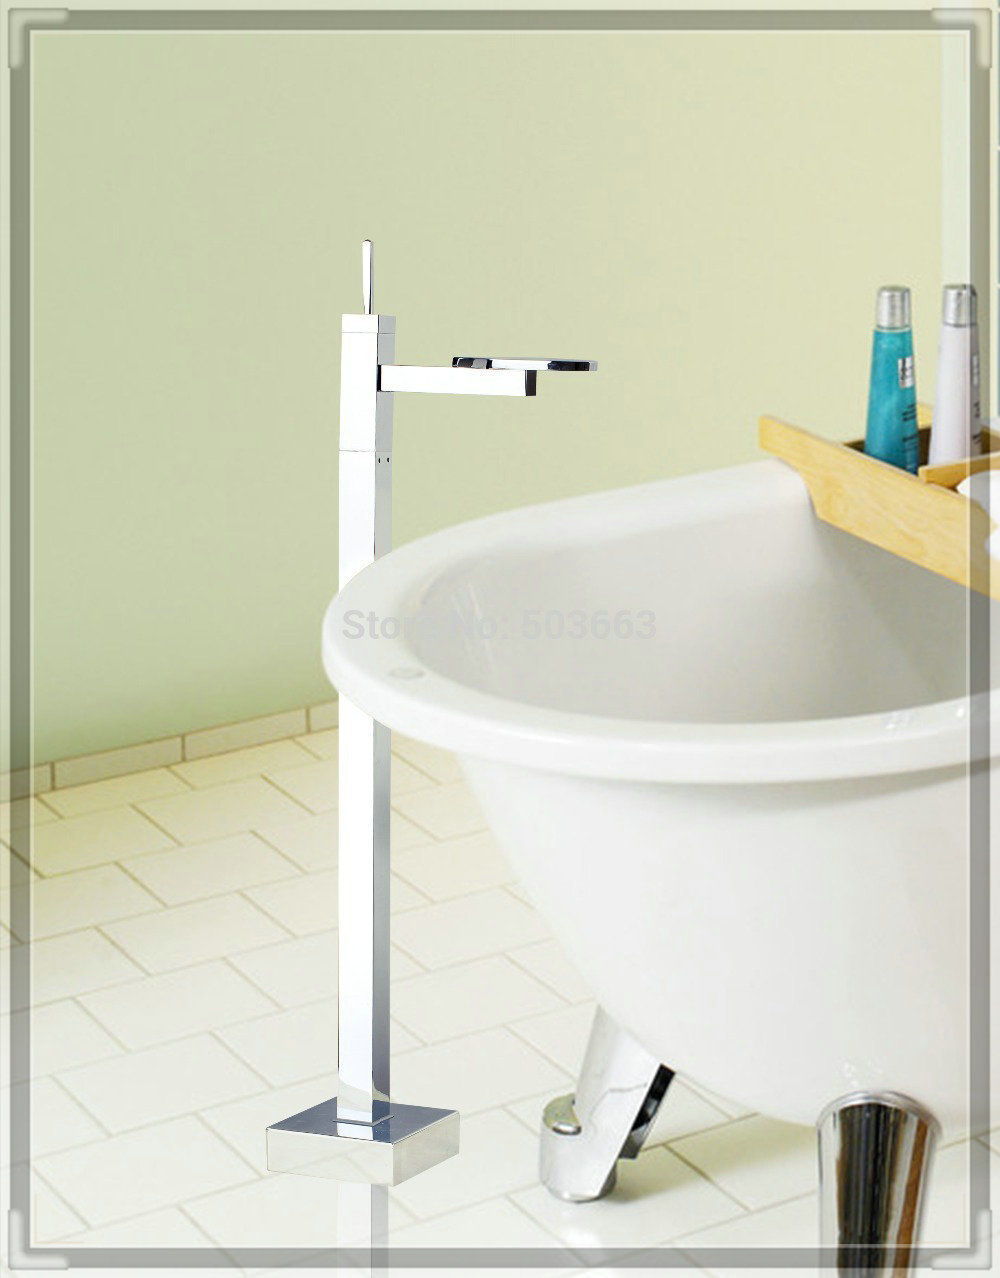 Morden Bathroom Bathtub Mixers Faucet Shower Sets grifos-in Bath ...